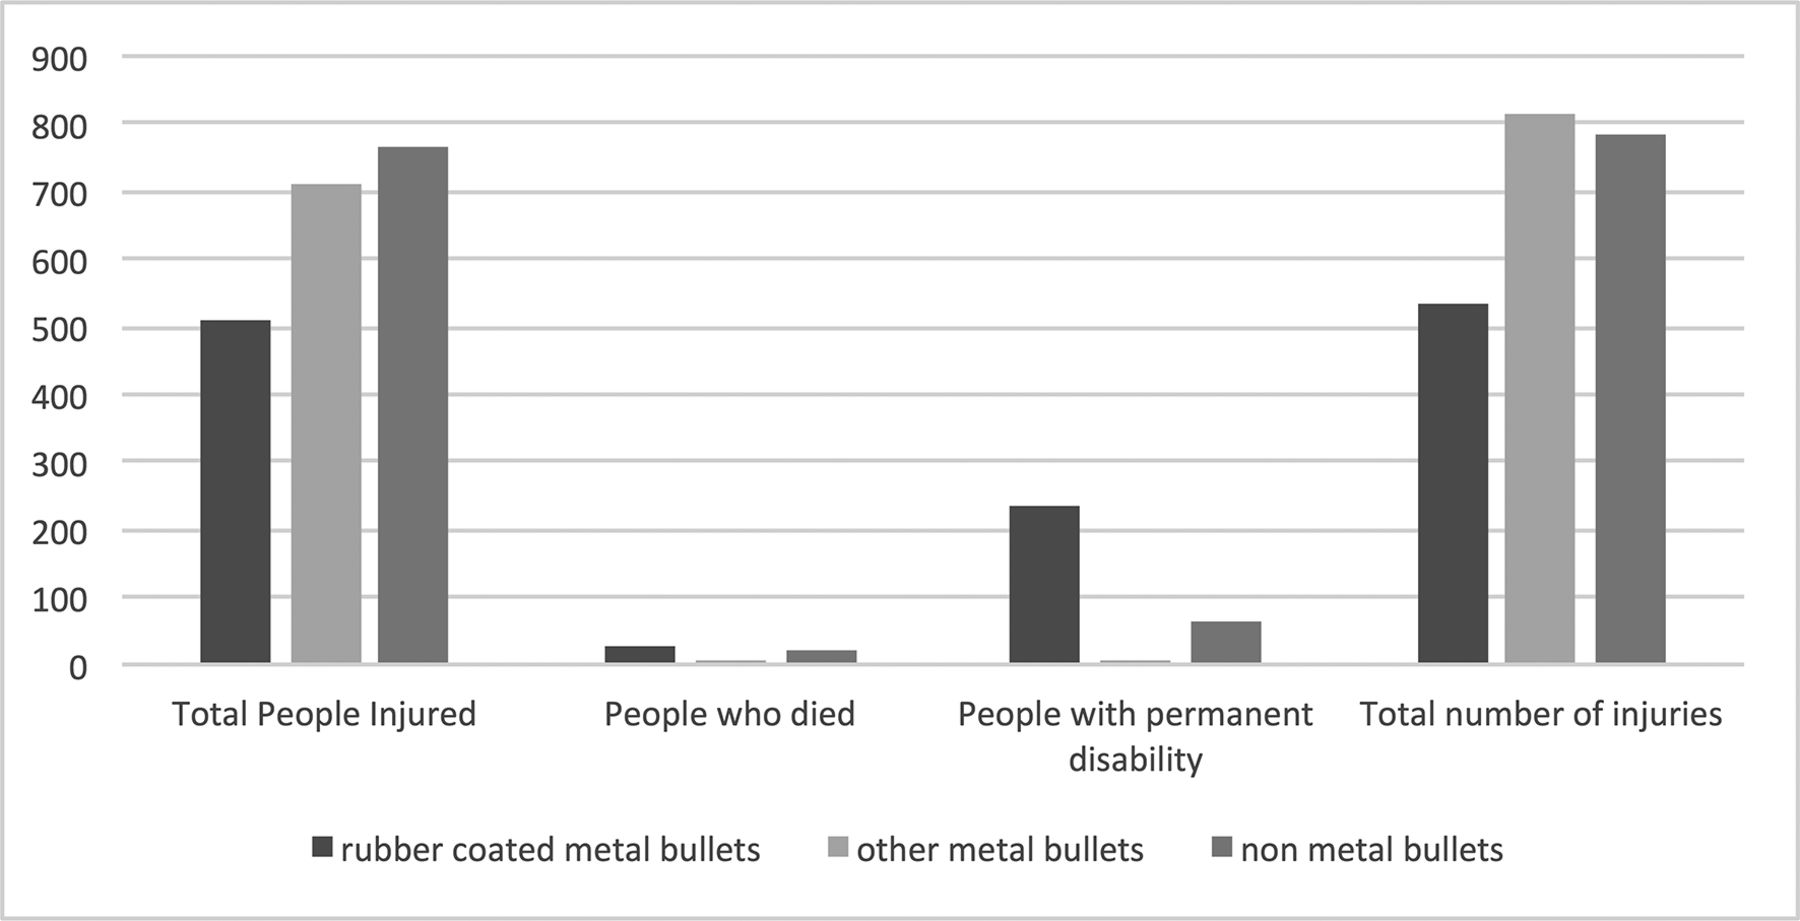 Death Injury And Disability From Kinetic Impact Projectiles In